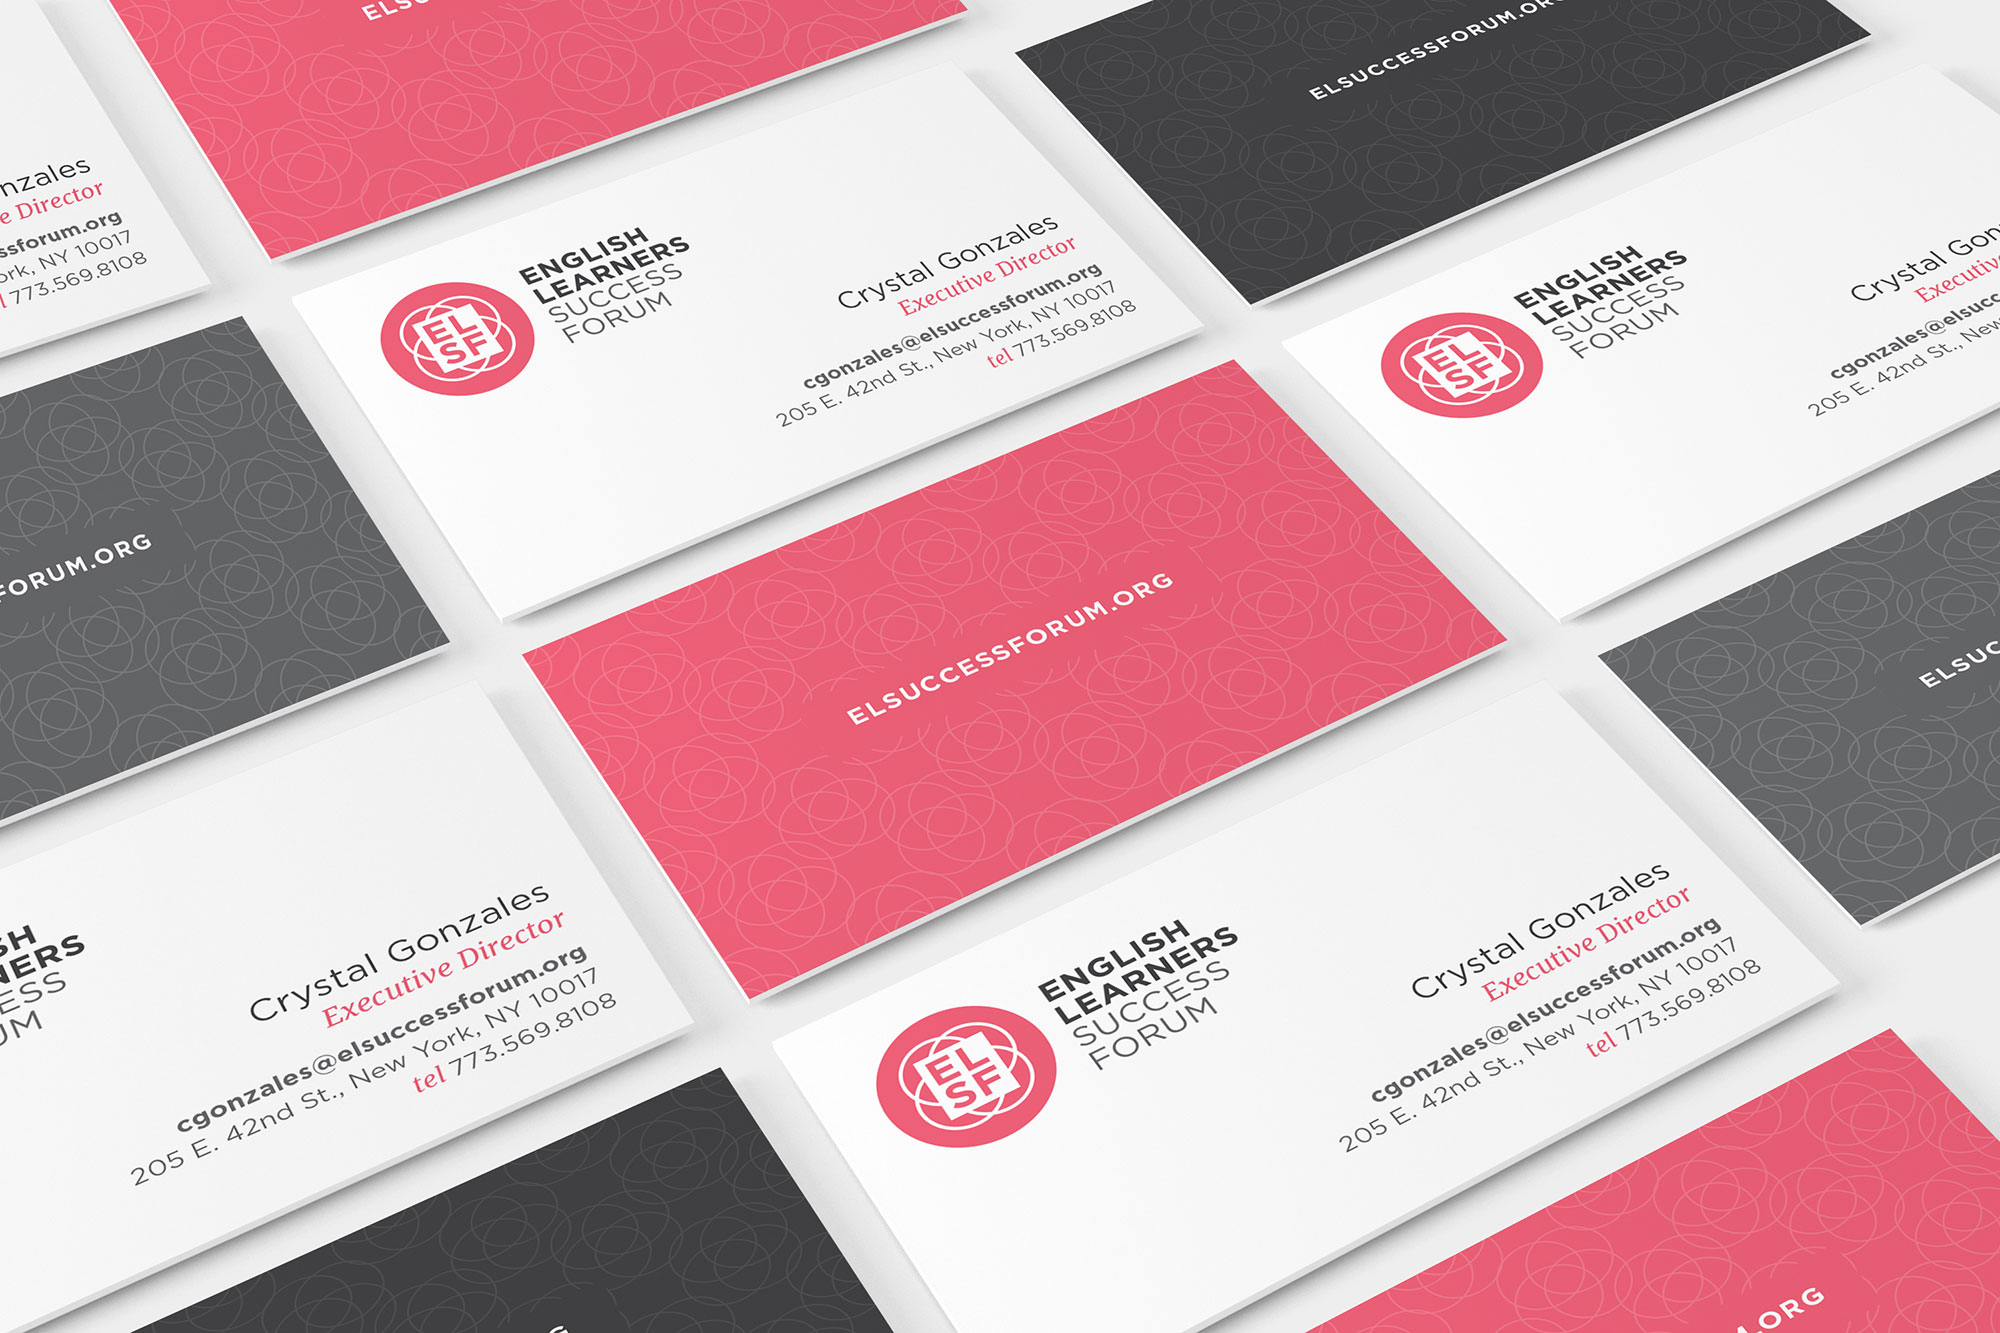 ELSF business cards in a grid